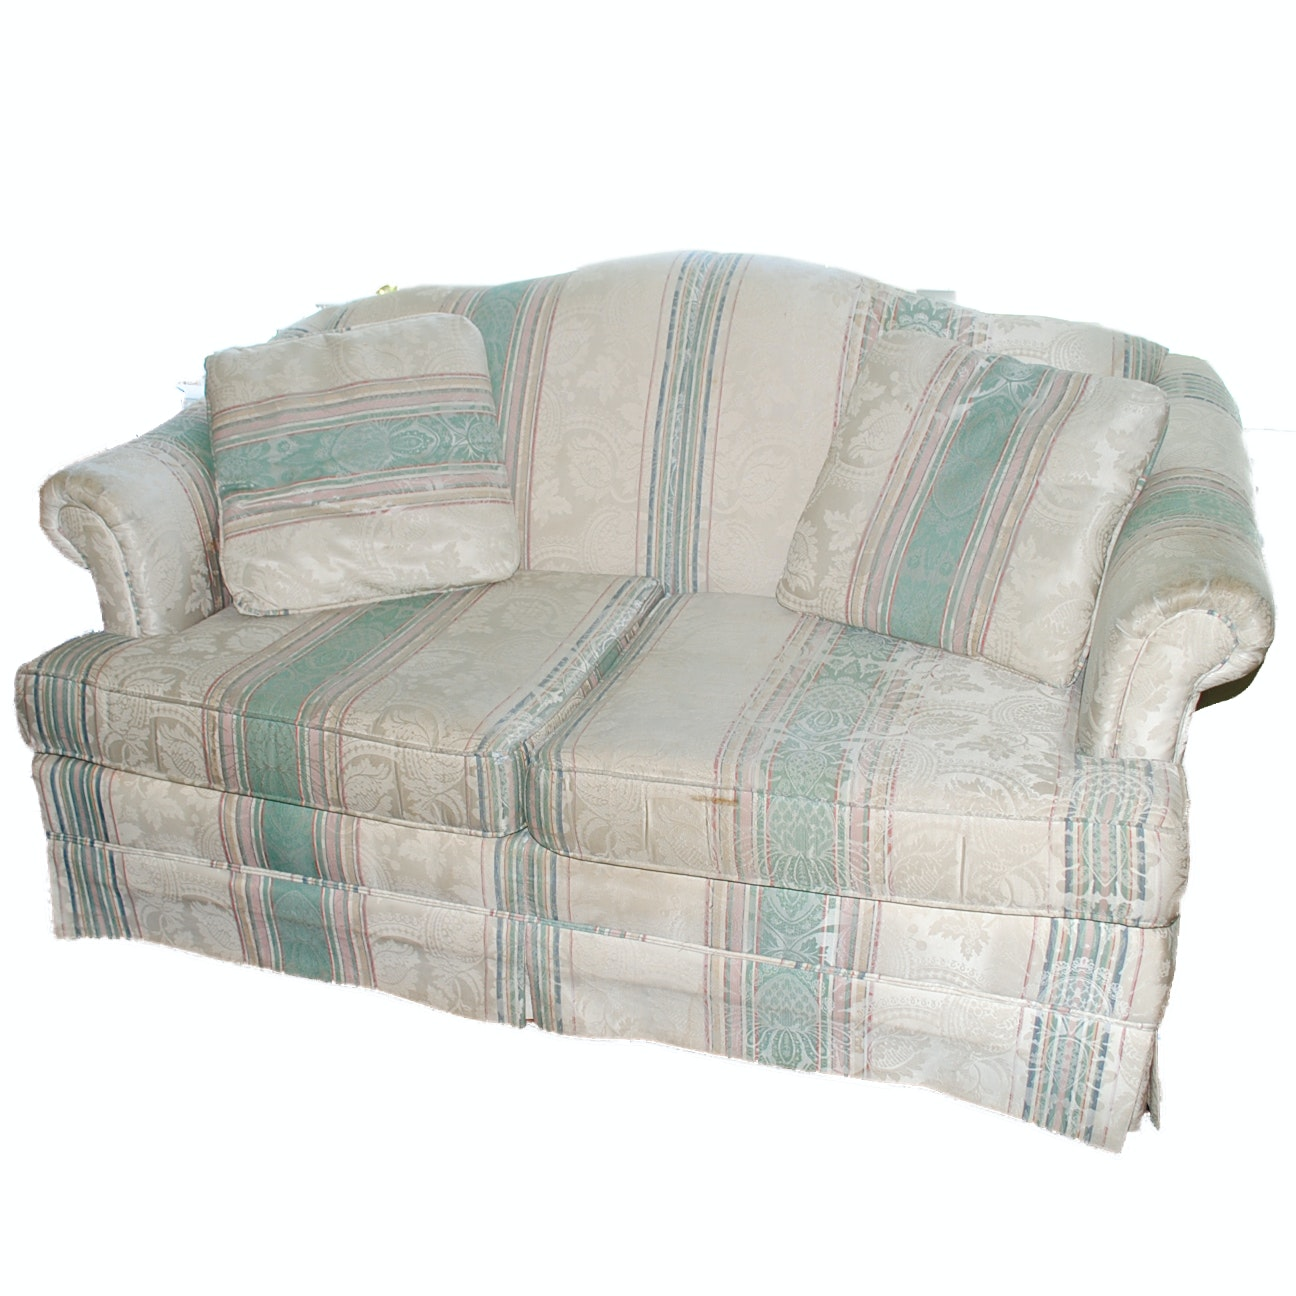 Camelback Loveseat with Foliate and Striped Upholstery